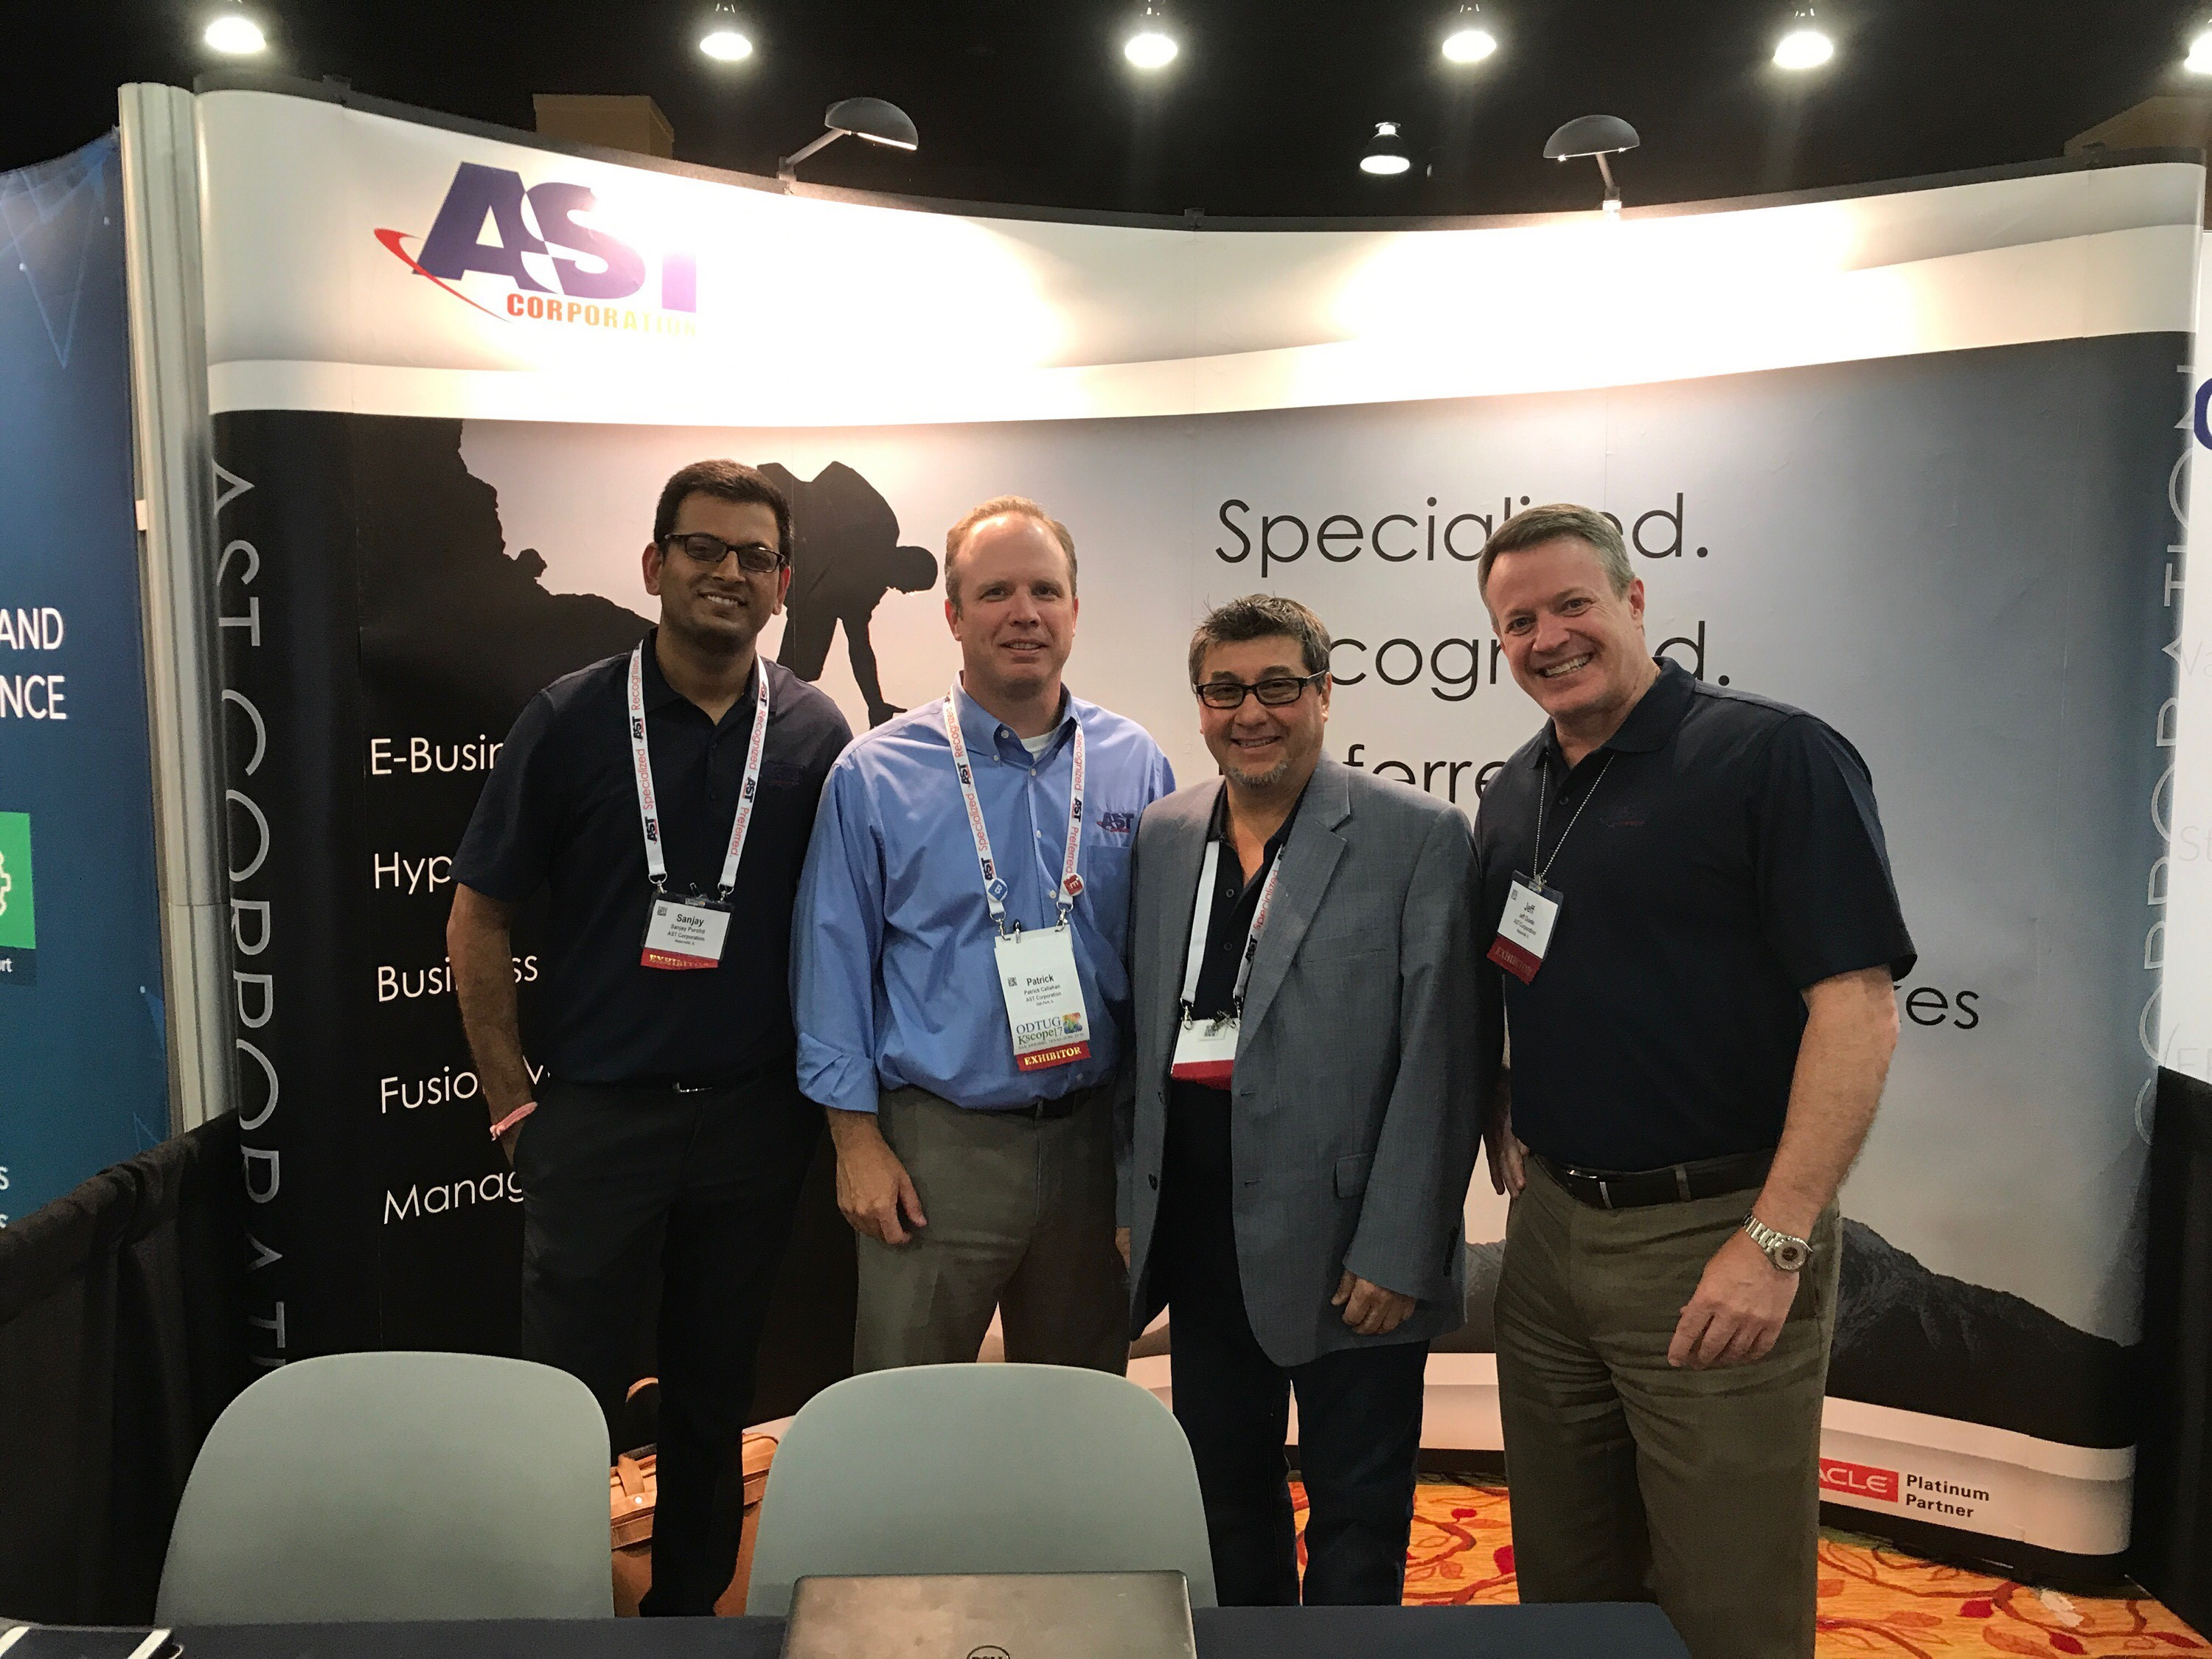 Team AST at Kscope17!